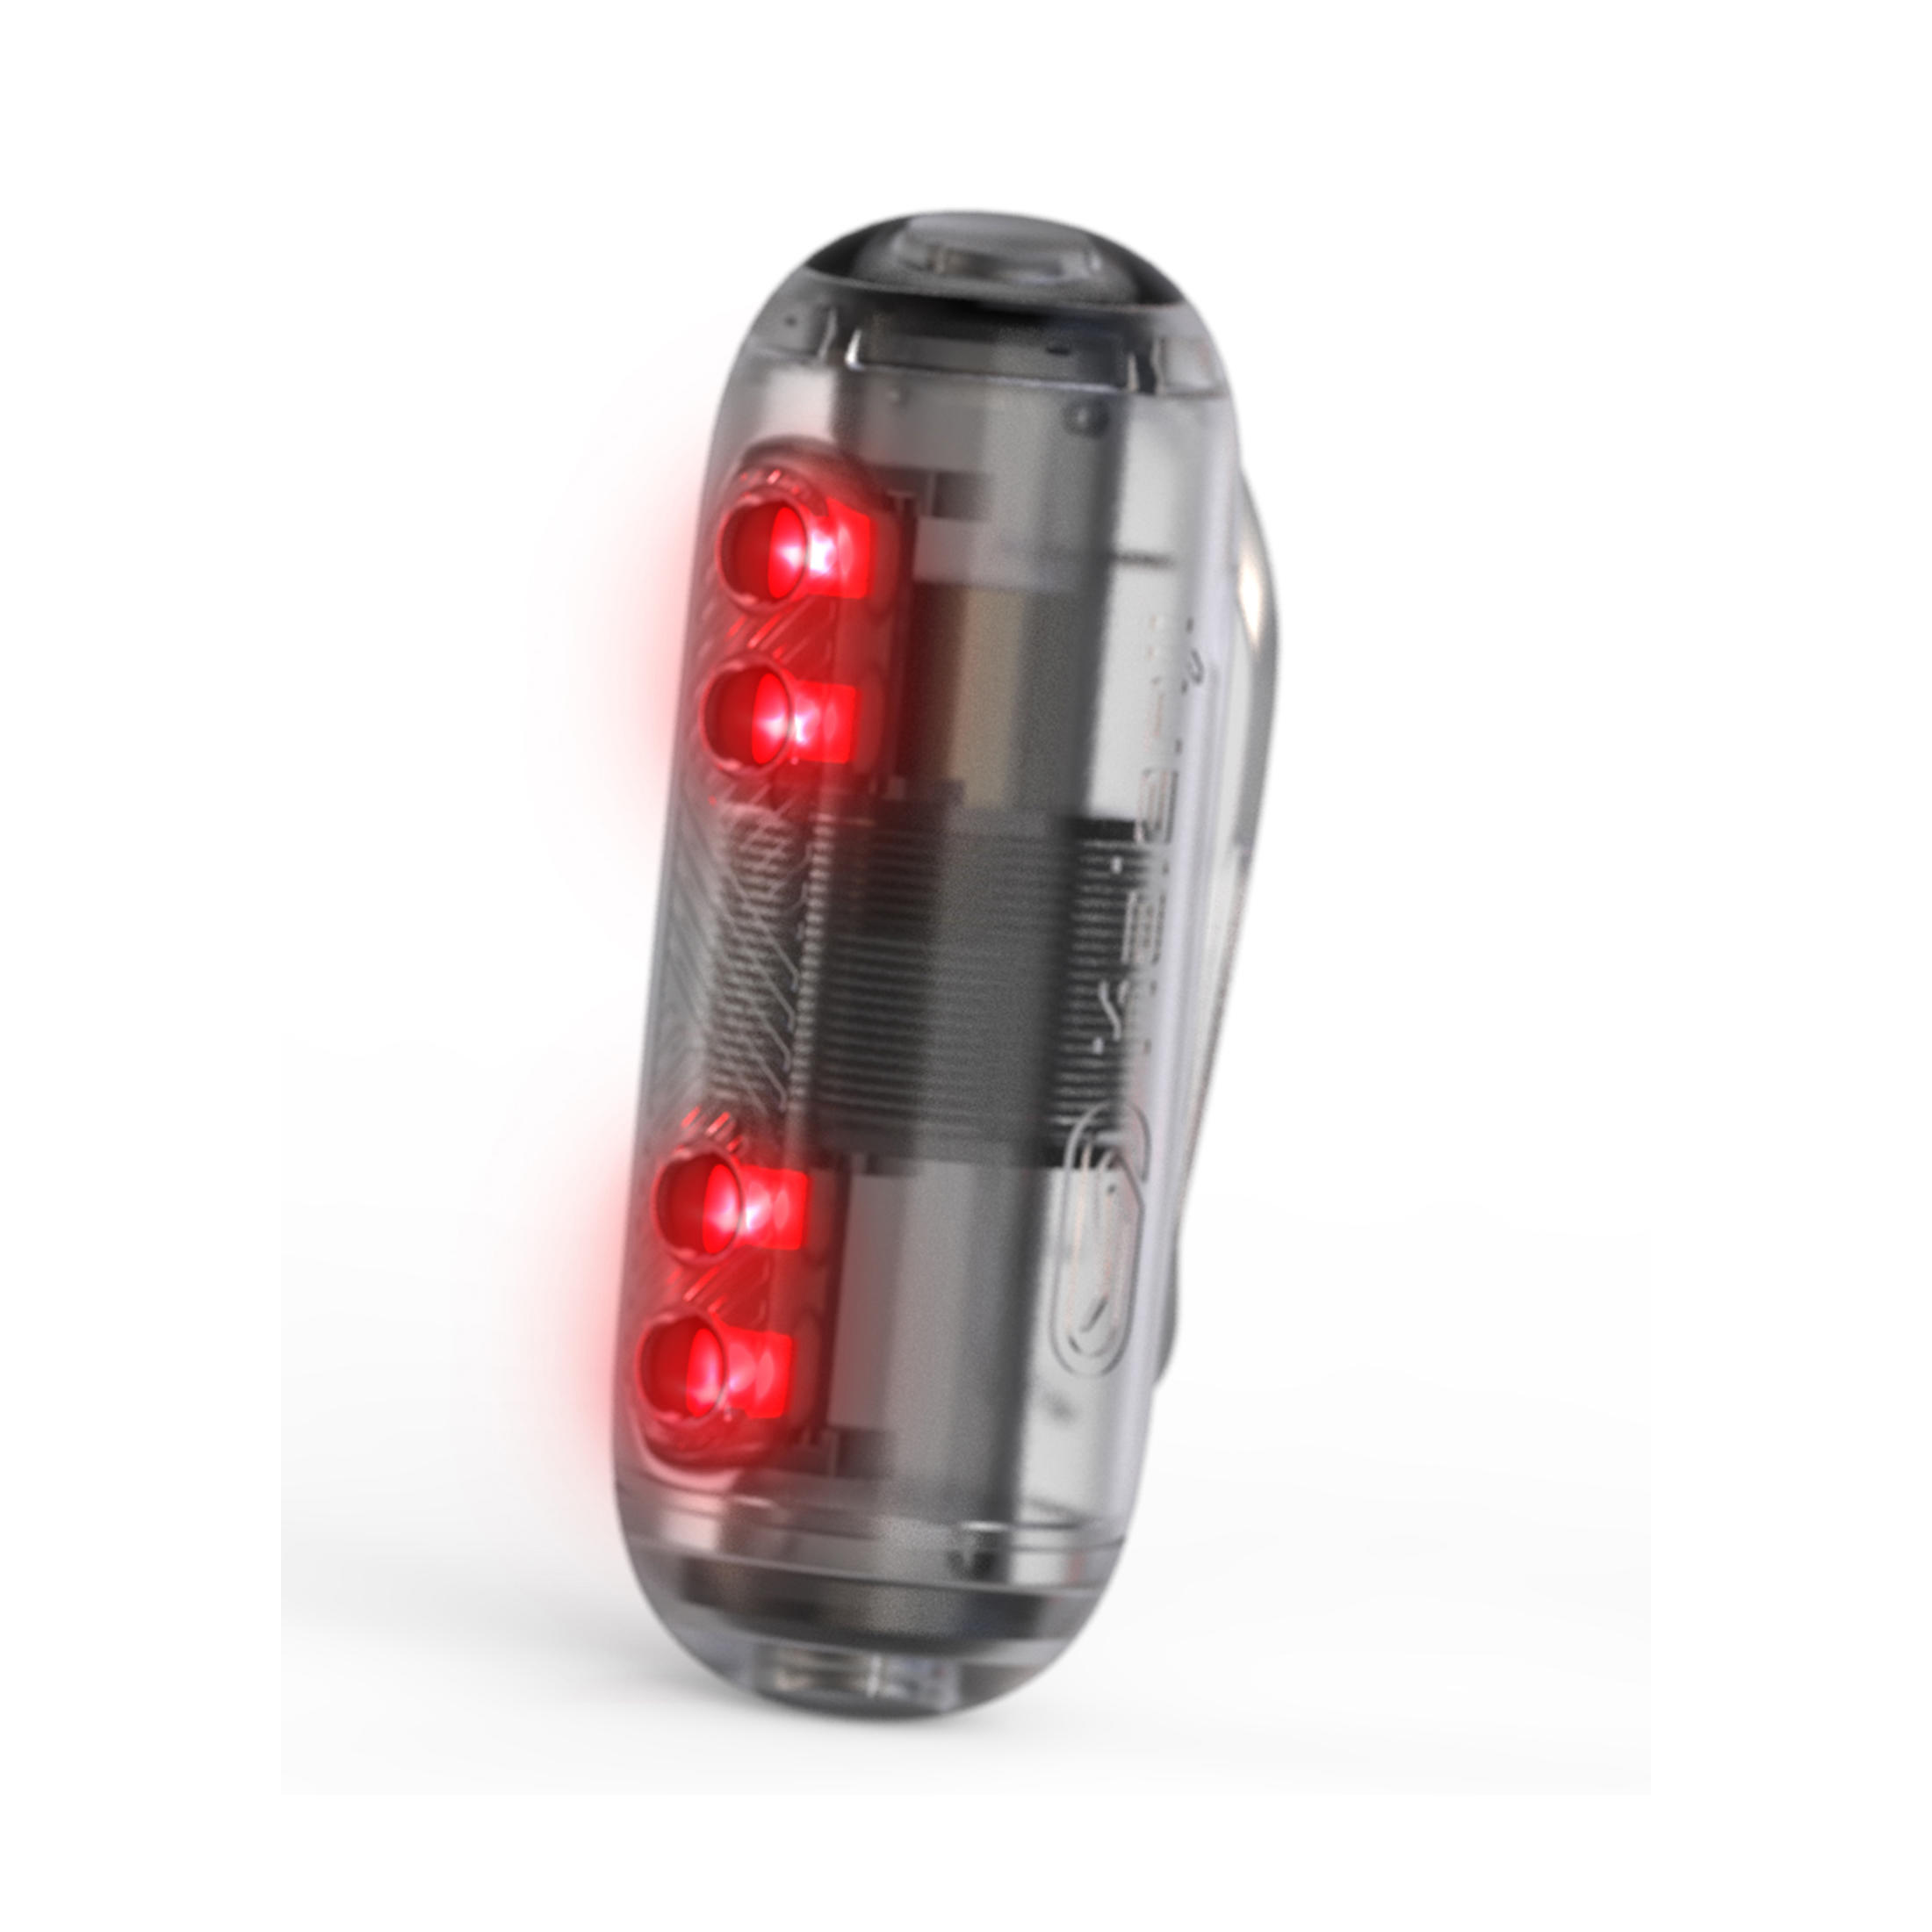 FLASHING LIGHT - NO BATTERY REQUIRED